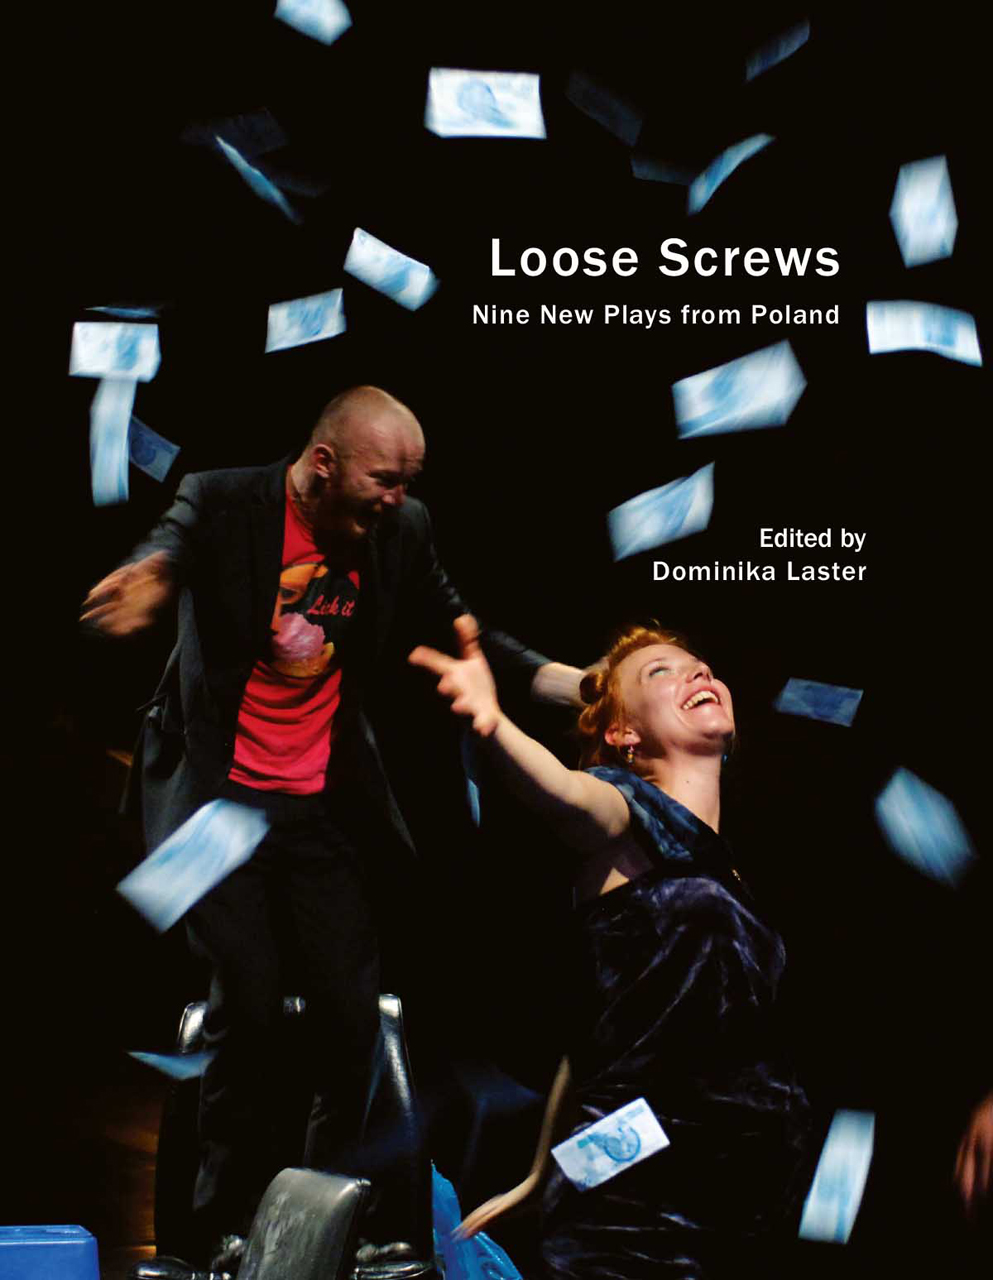 Loose Screws: Nine New Plays from Poland by Dominika Laster    Seagull Books